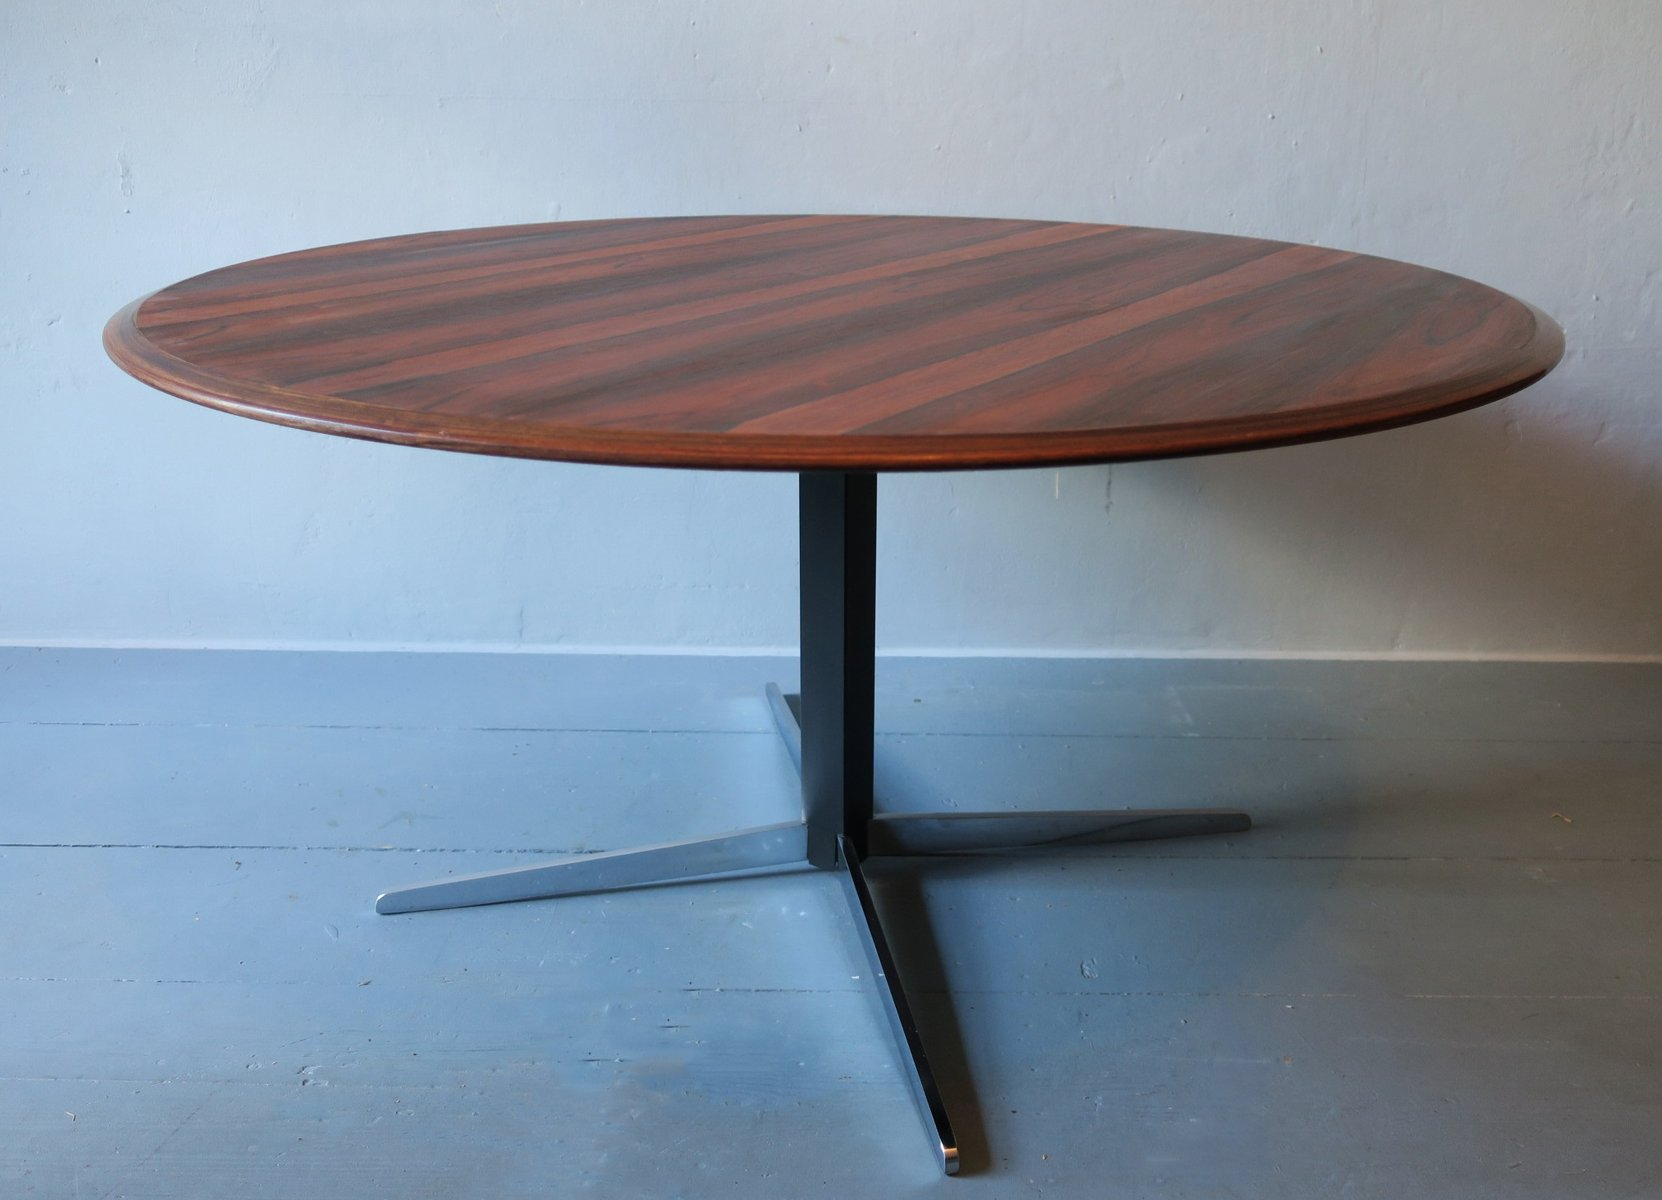 Adjustable Rosewood Dining or Coffee Table by Wilhelm Renz 1960s